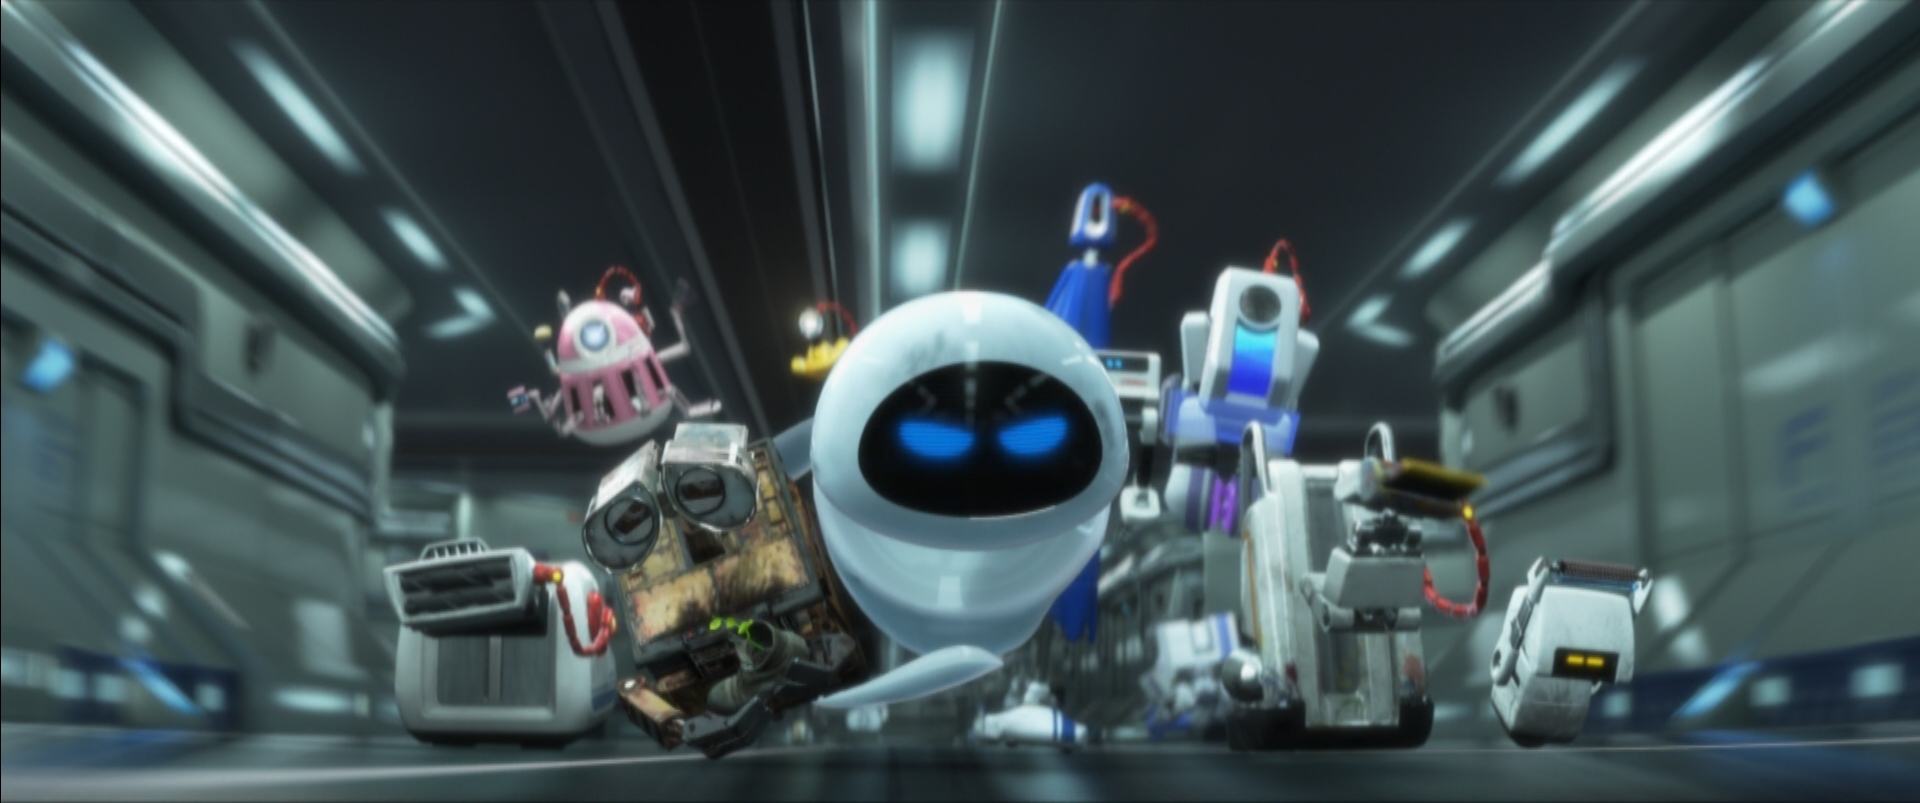 Image result for wall-e rogue robots